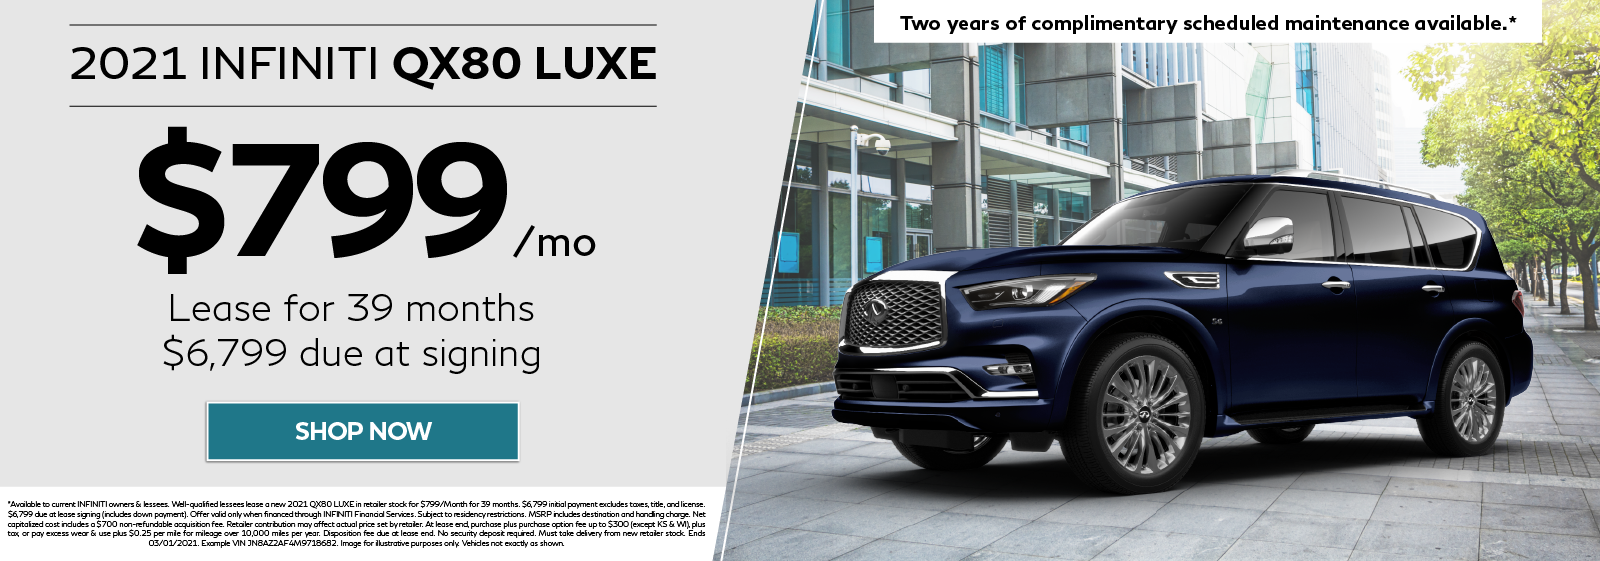 Lease a new 2021 QX80 Luxe for $799 per month for 39 months. Click to shop now.